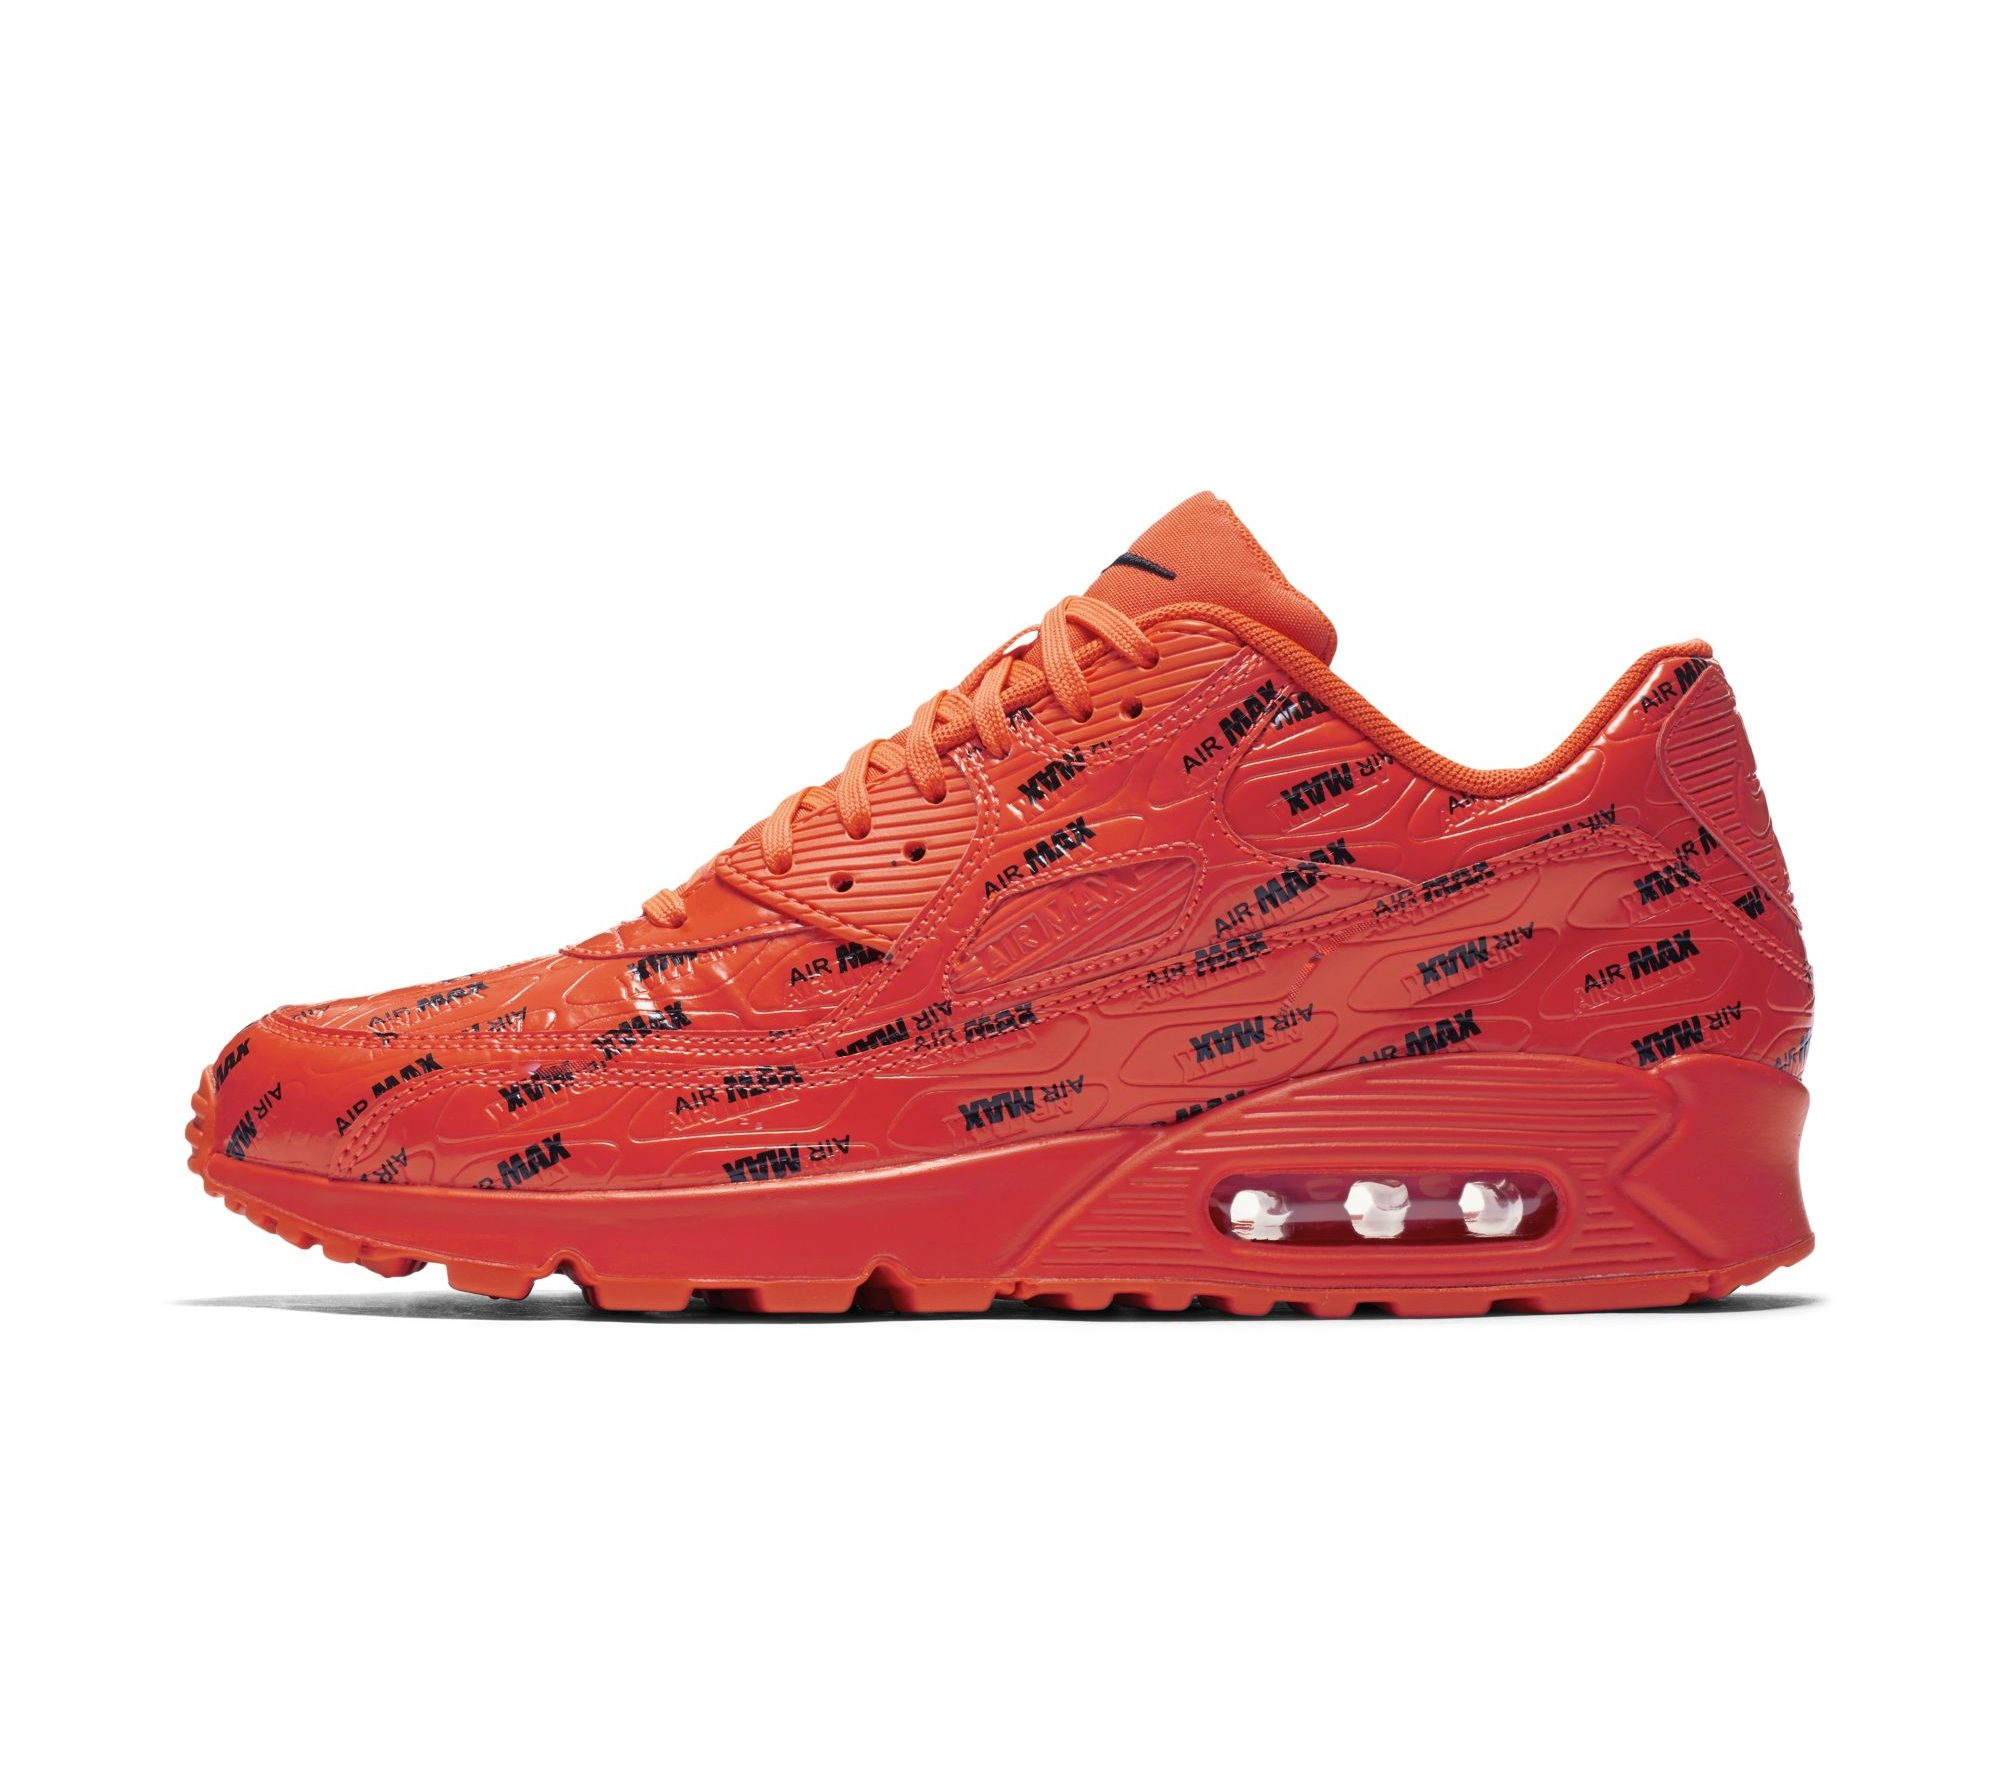 revendeur 176f8 e6d69 Did Anyone Ask For More All-Over Logo Air Maxes? - WearTesters